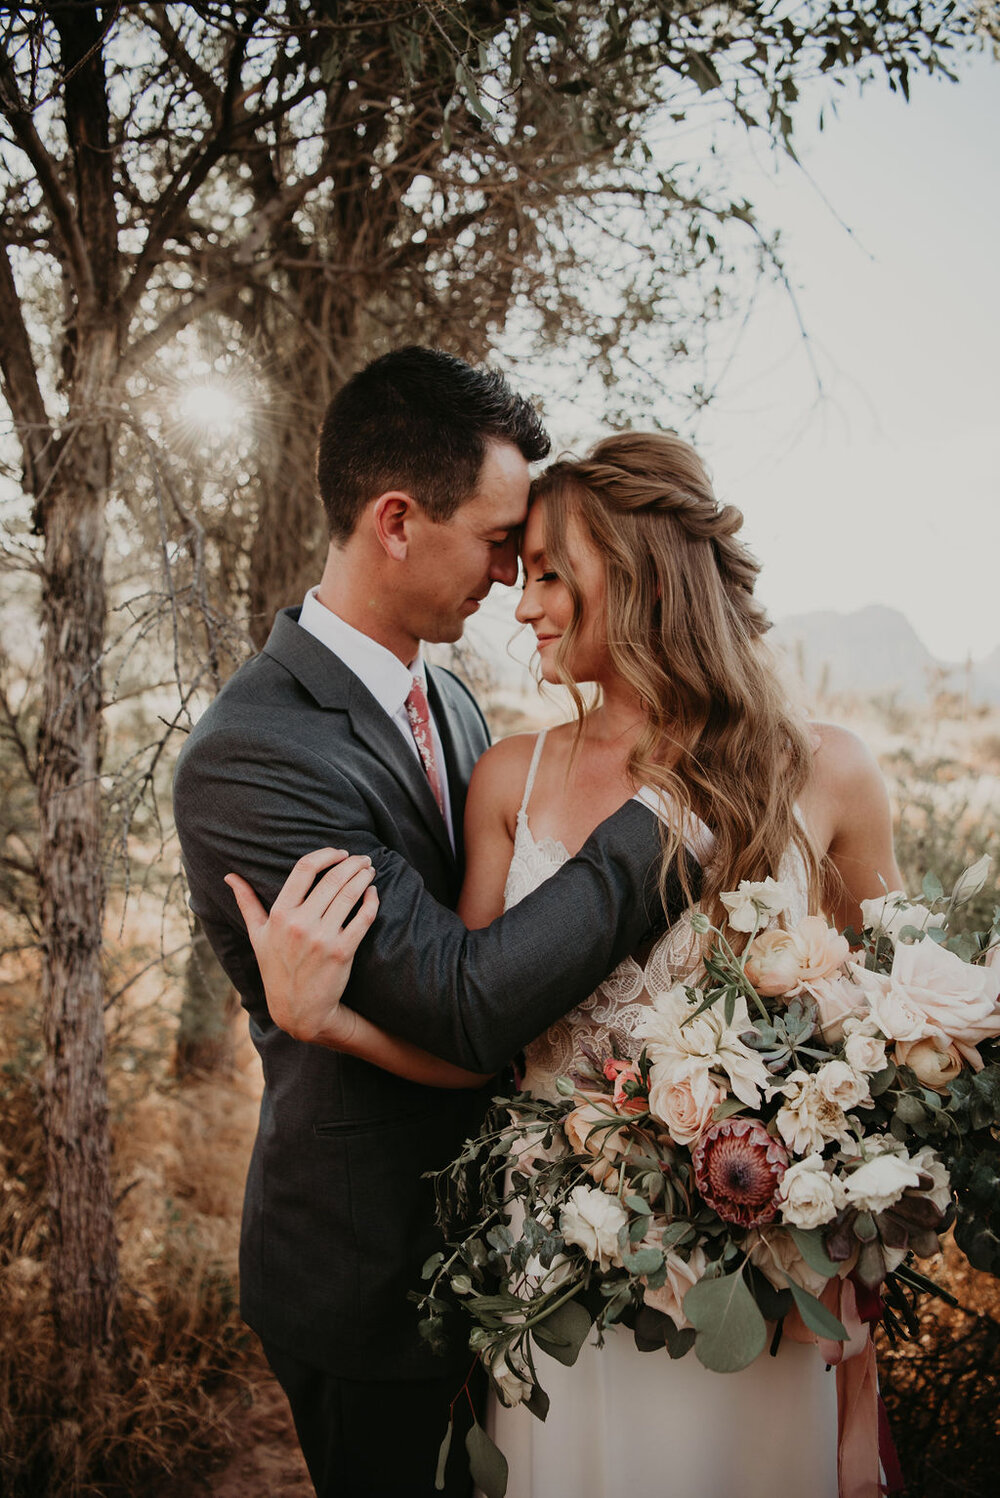 Bohemian Desert Elopement | Styled Shoot